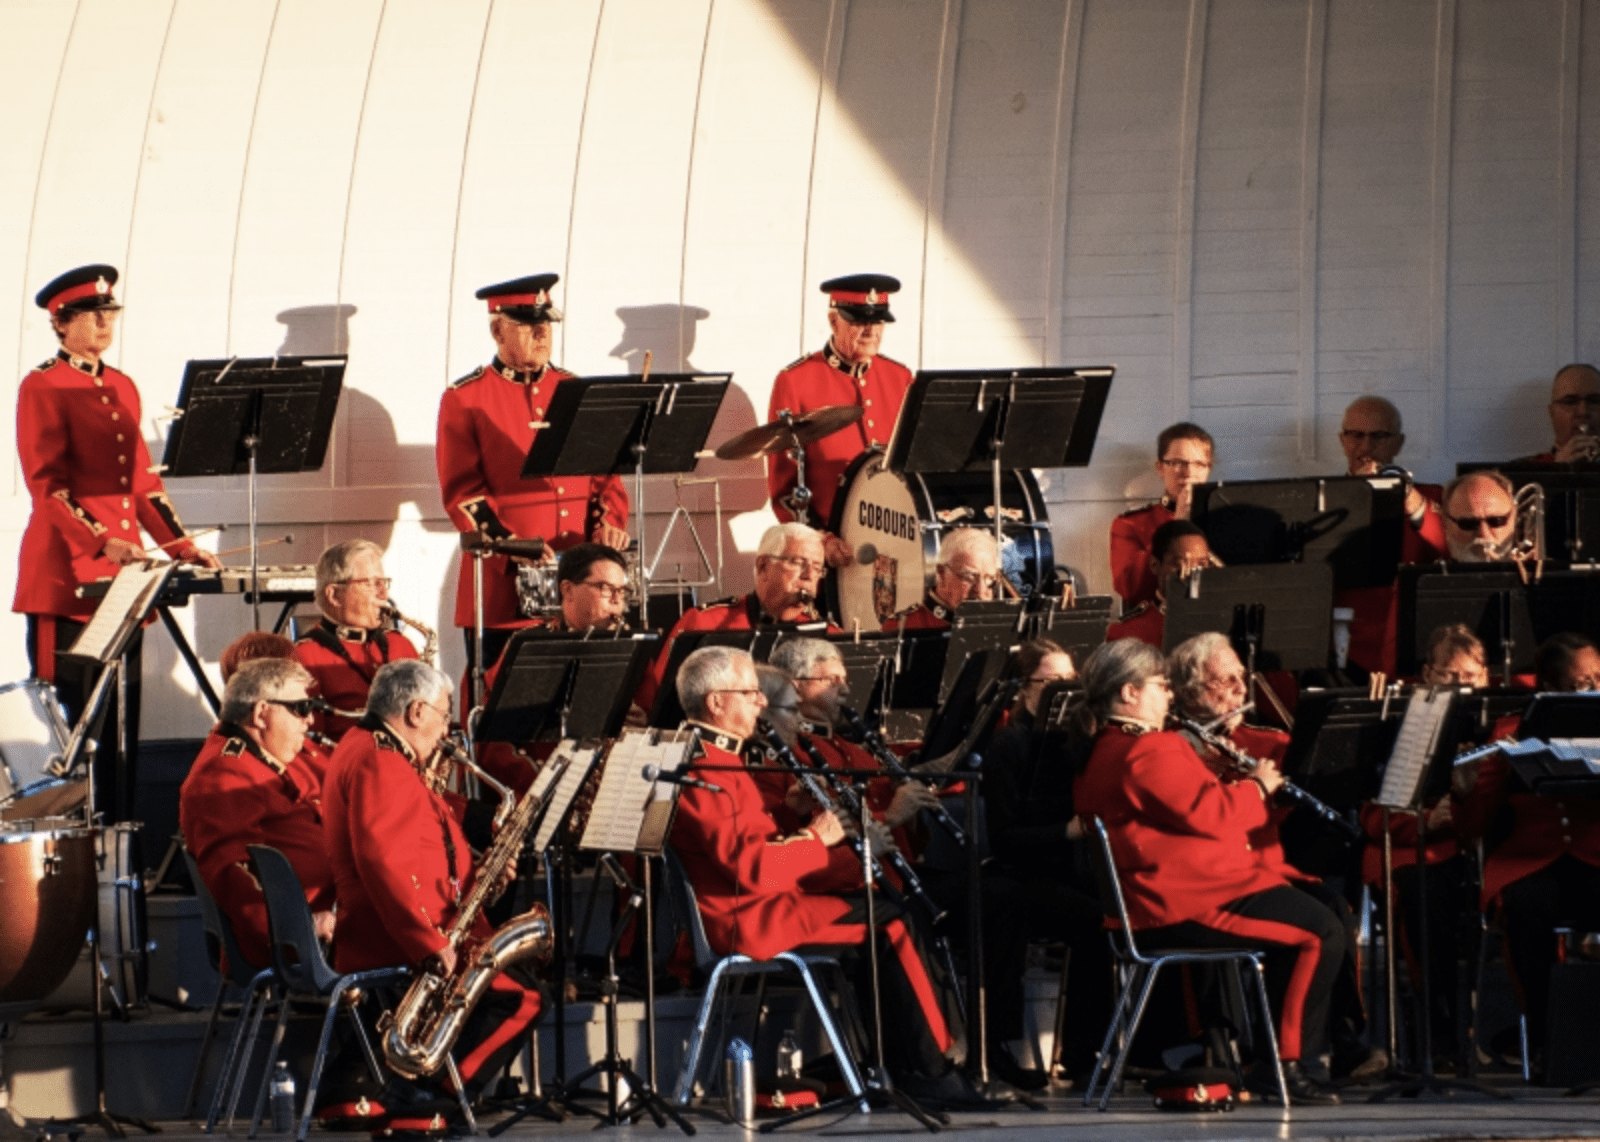 photo of the concert band of cobourg performing at the victoria park bandshell